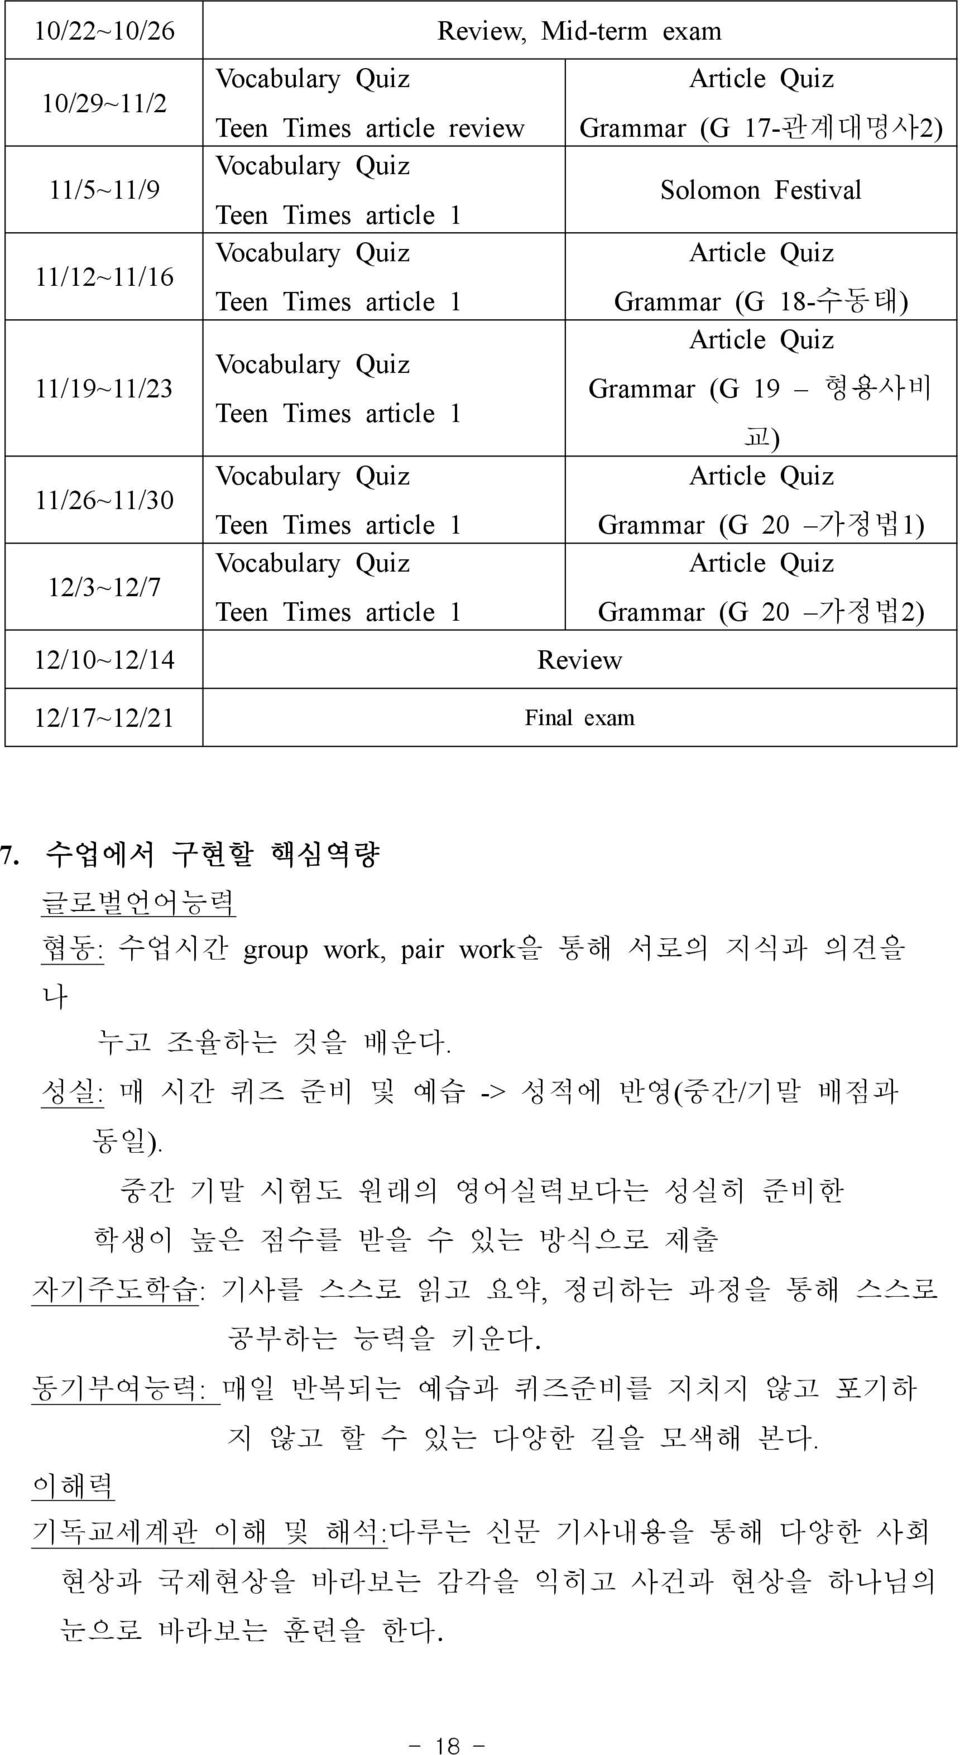 Times article 1 Grammar (G 20 가정법1) 12/3~12/7 Vocabulary Quiz Article Quiz Teen Times article 1 Grammar (G 20 가정법2) 12/10~12/14 Review 12/17~12/21 Final exam 7.